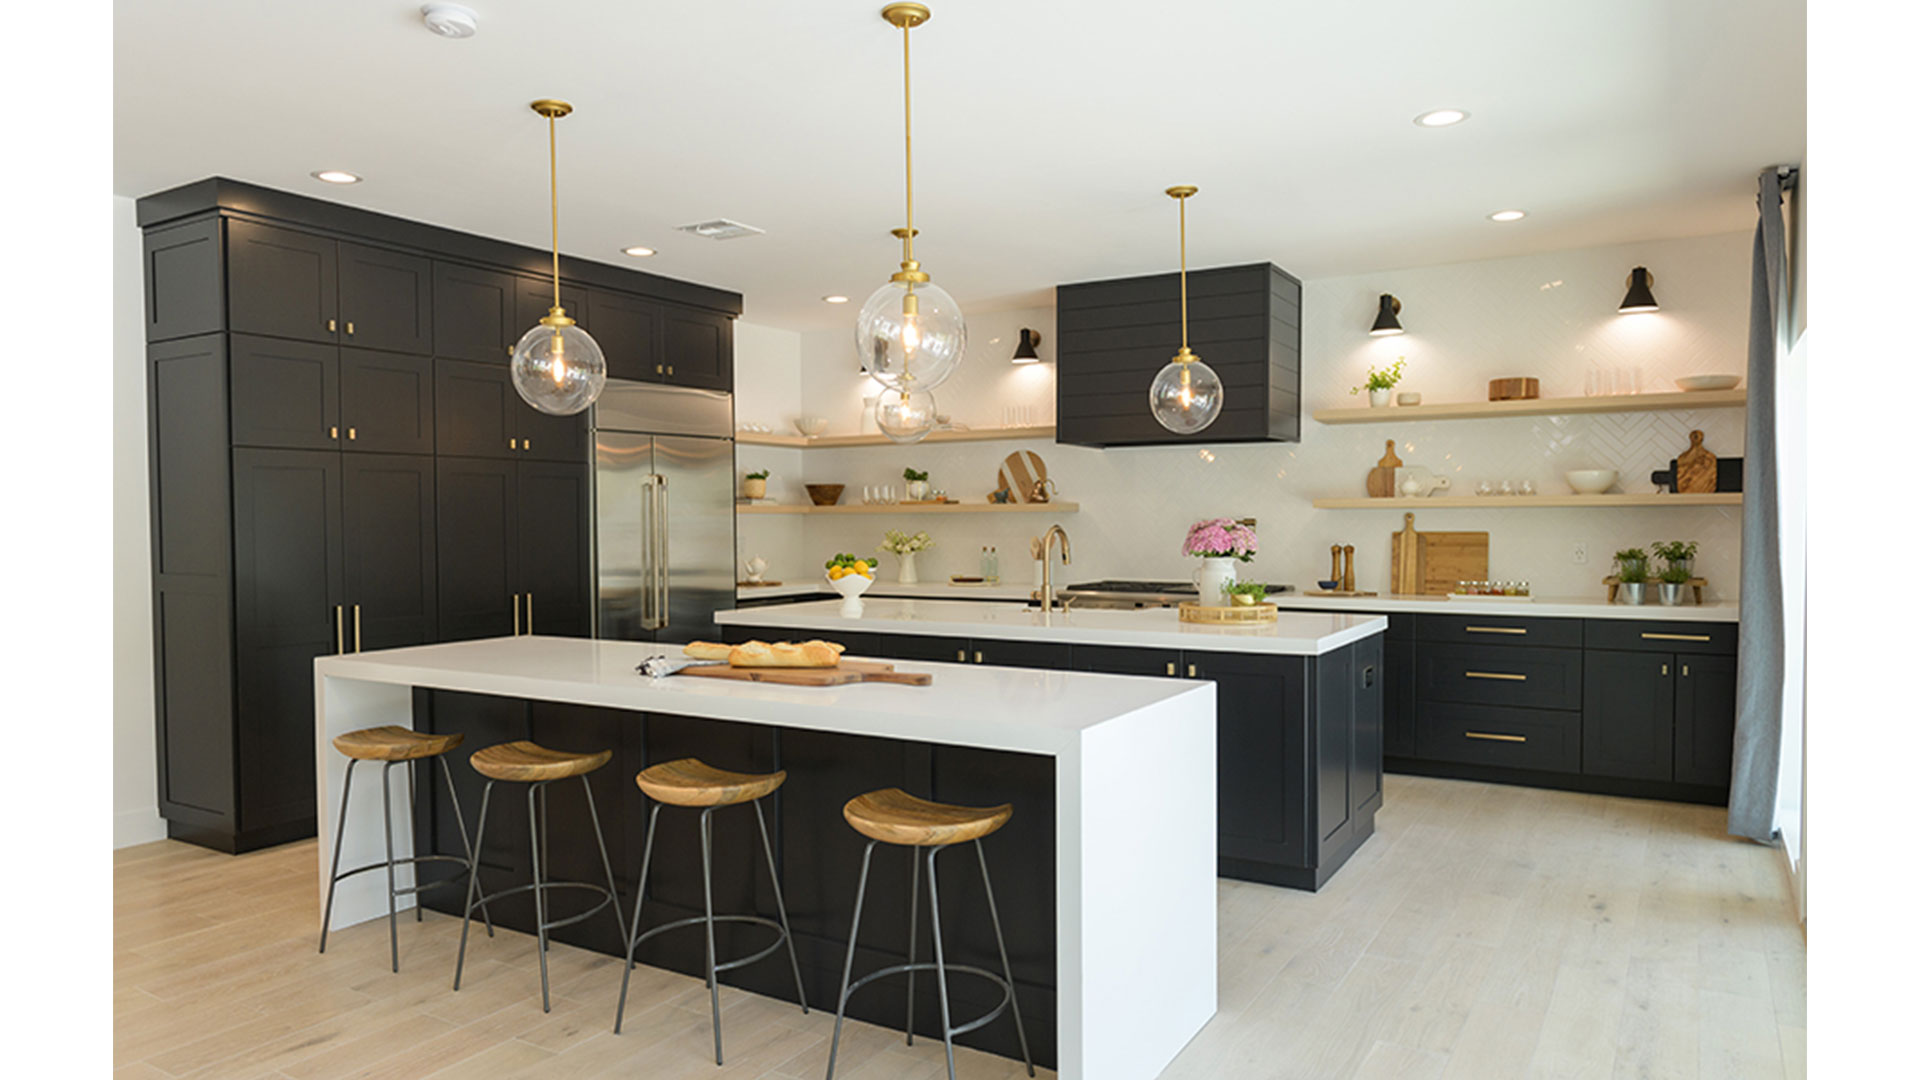 The Property Brothers Pulled off a Kitchen Design with Two Islands